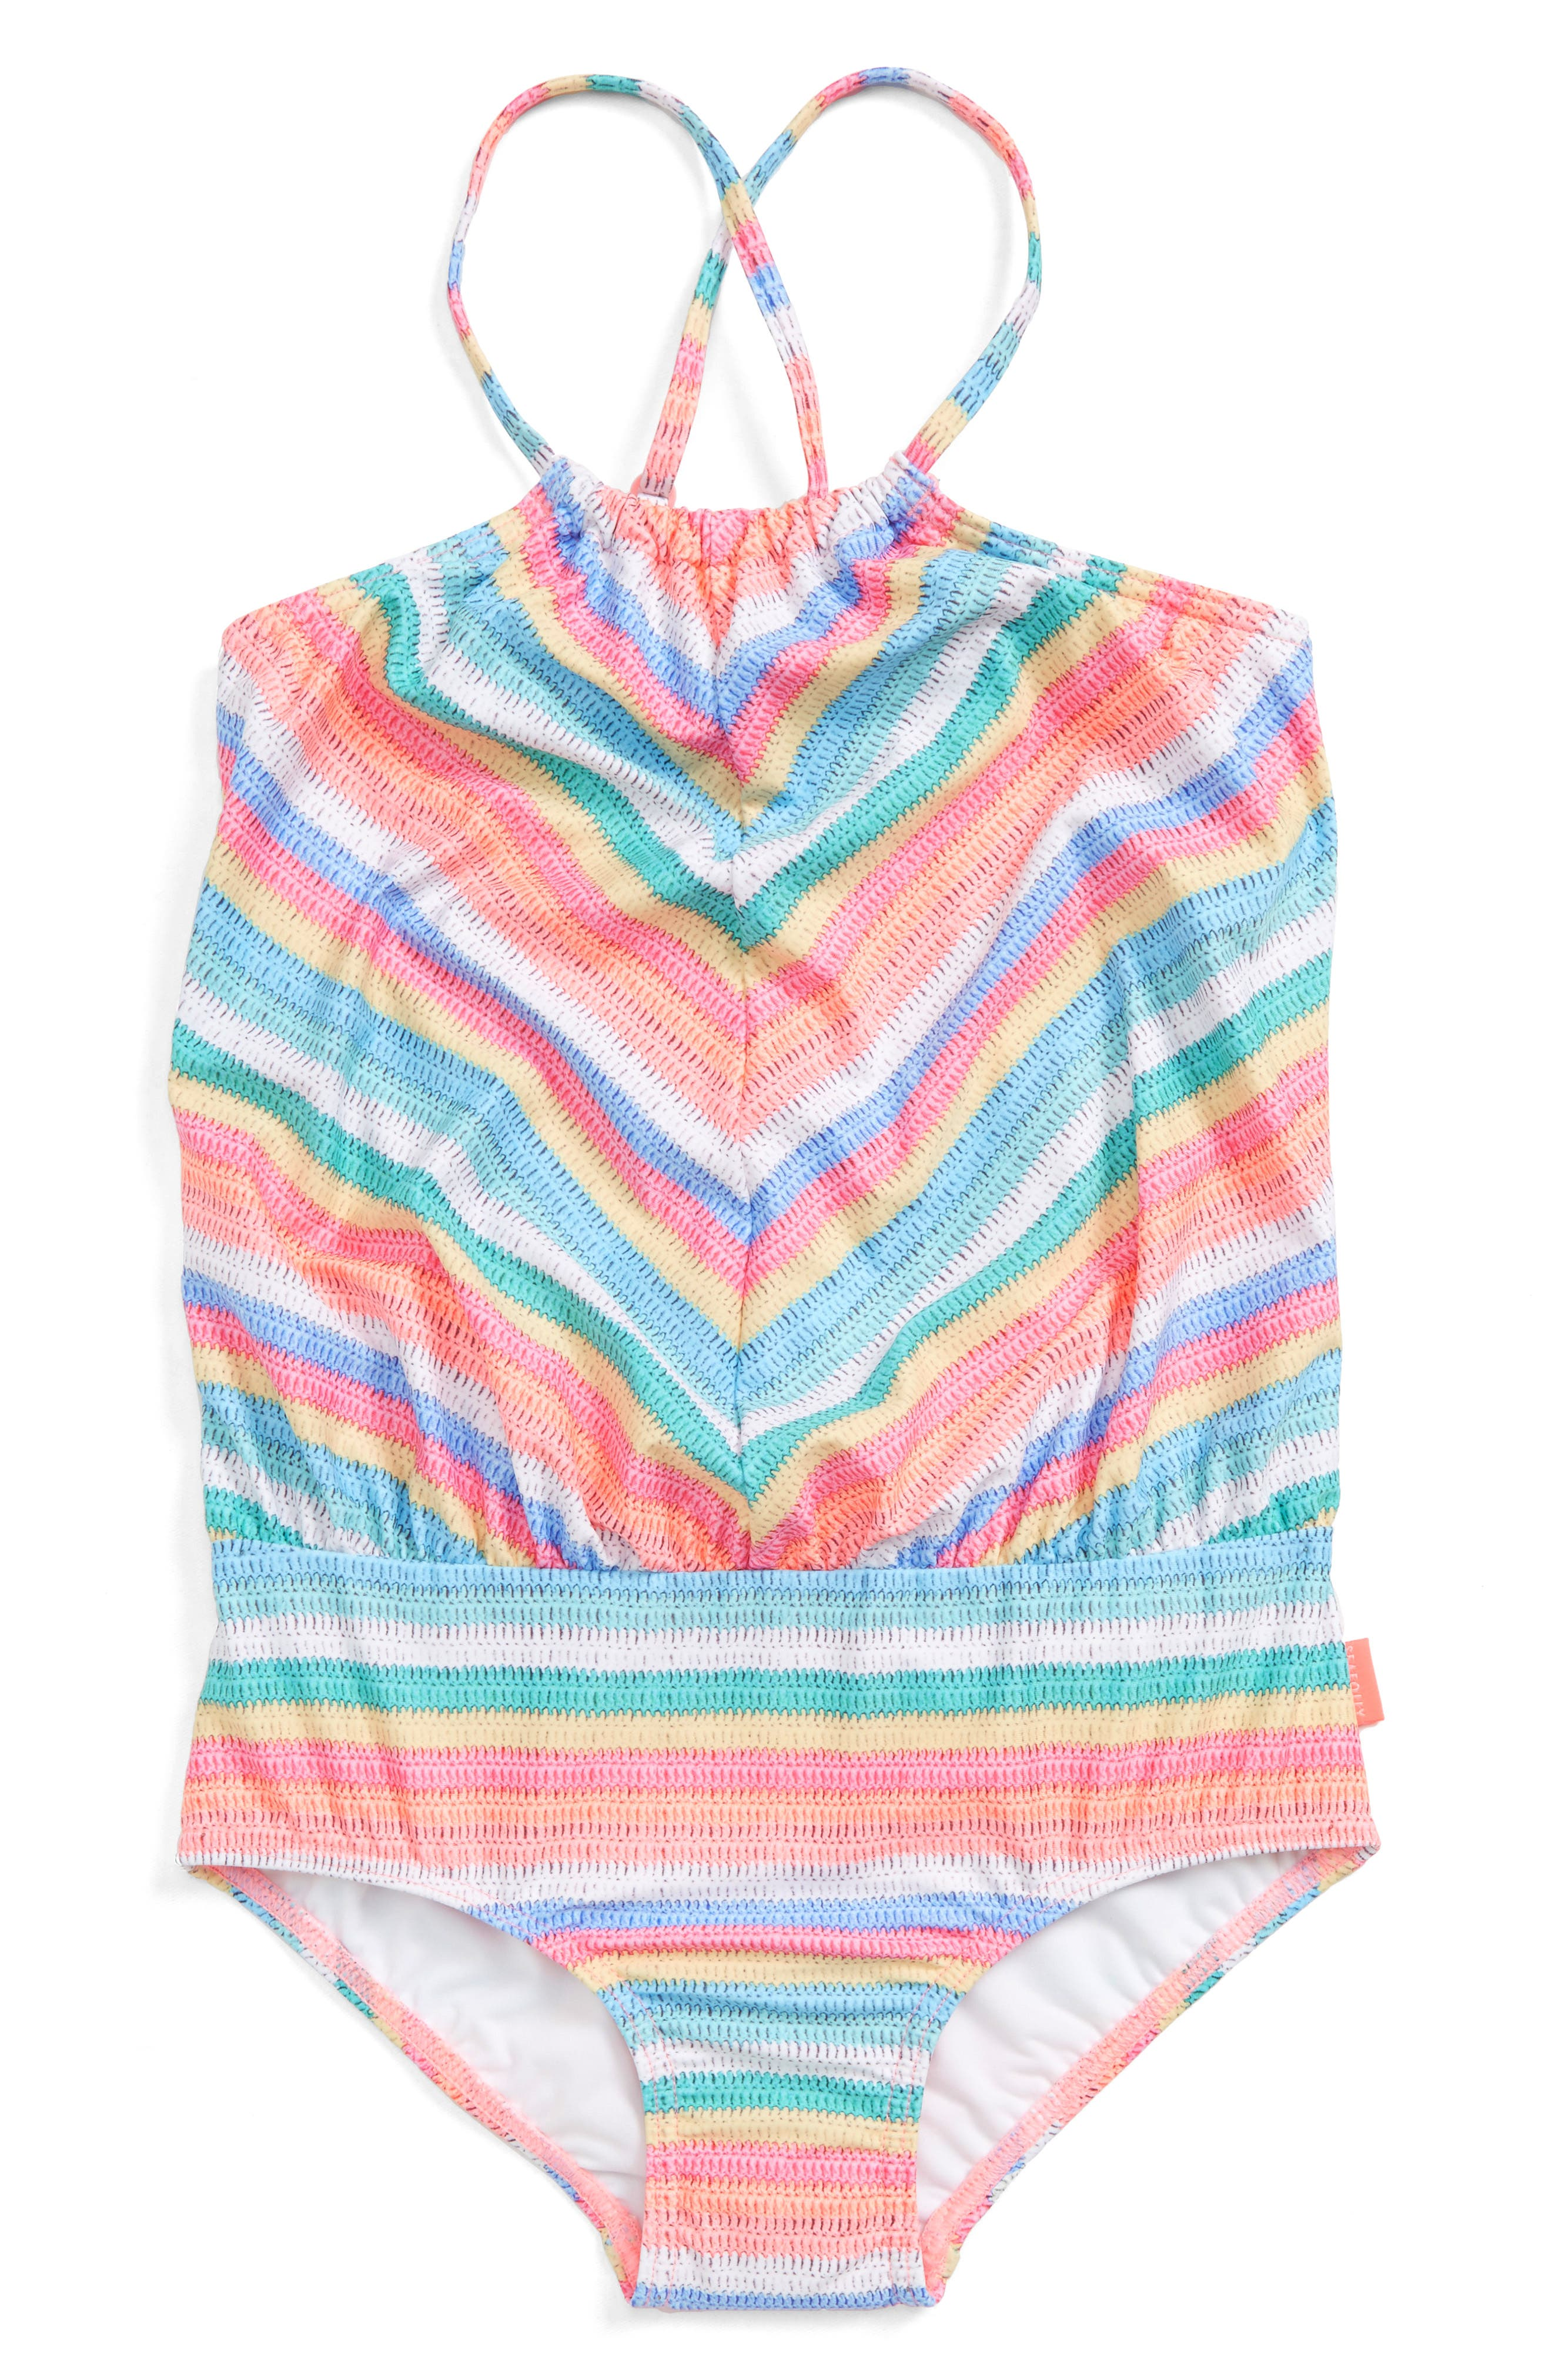 Main Image - Seafolly Candy Pop One-Piece Swimsuit (Toddler Girls & Little Girls)